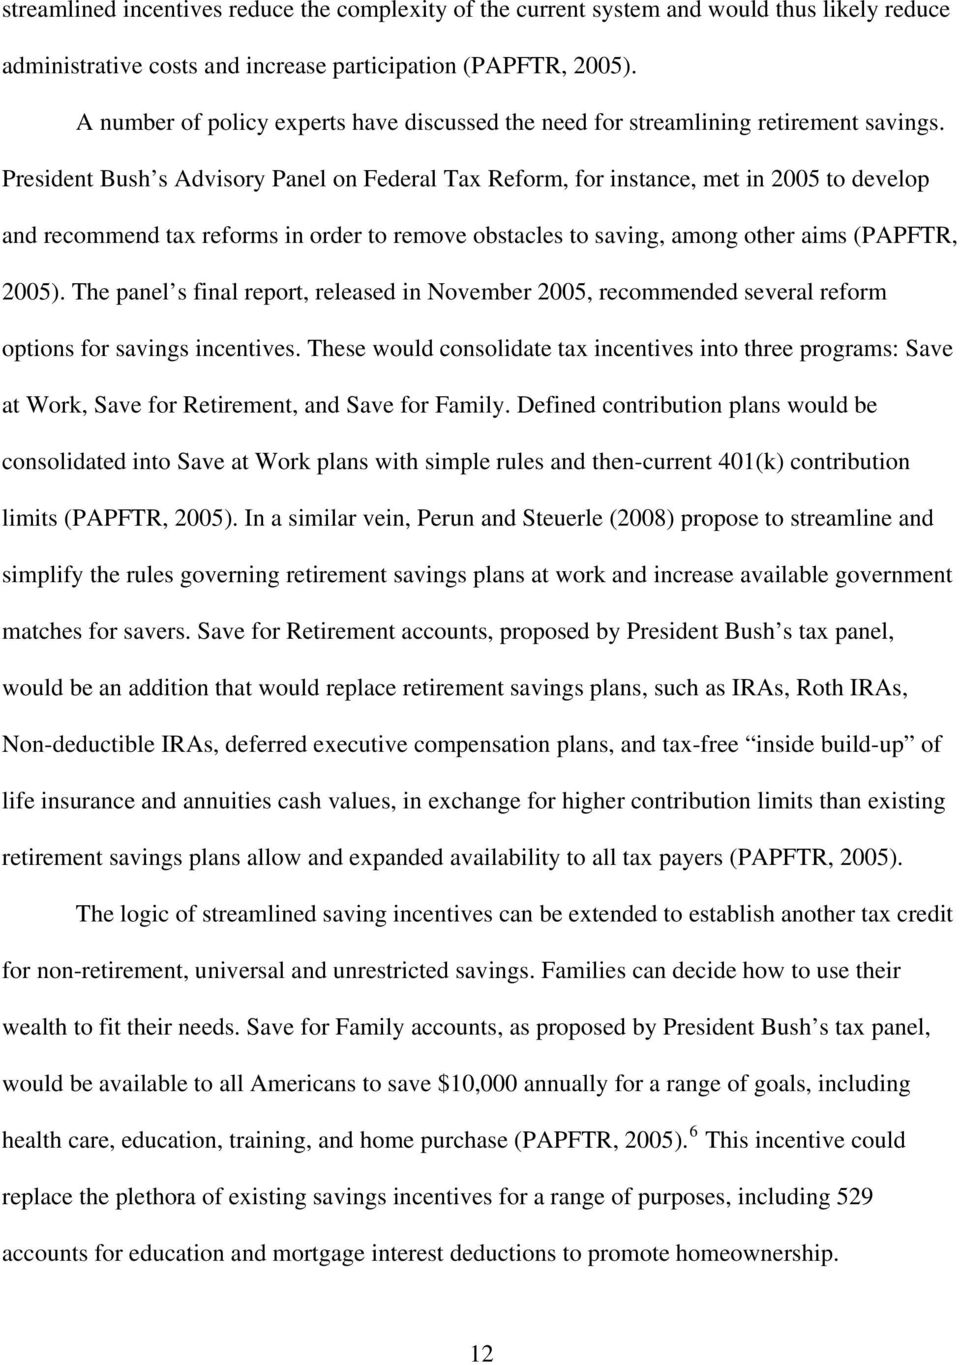 President Bush s Advisory Panel on Federal Tax Reform, for instance, met in 2005 to develop and recommend tax reforms in order to remove obstacles to saving, among other aims (PAPFTR, 2005).